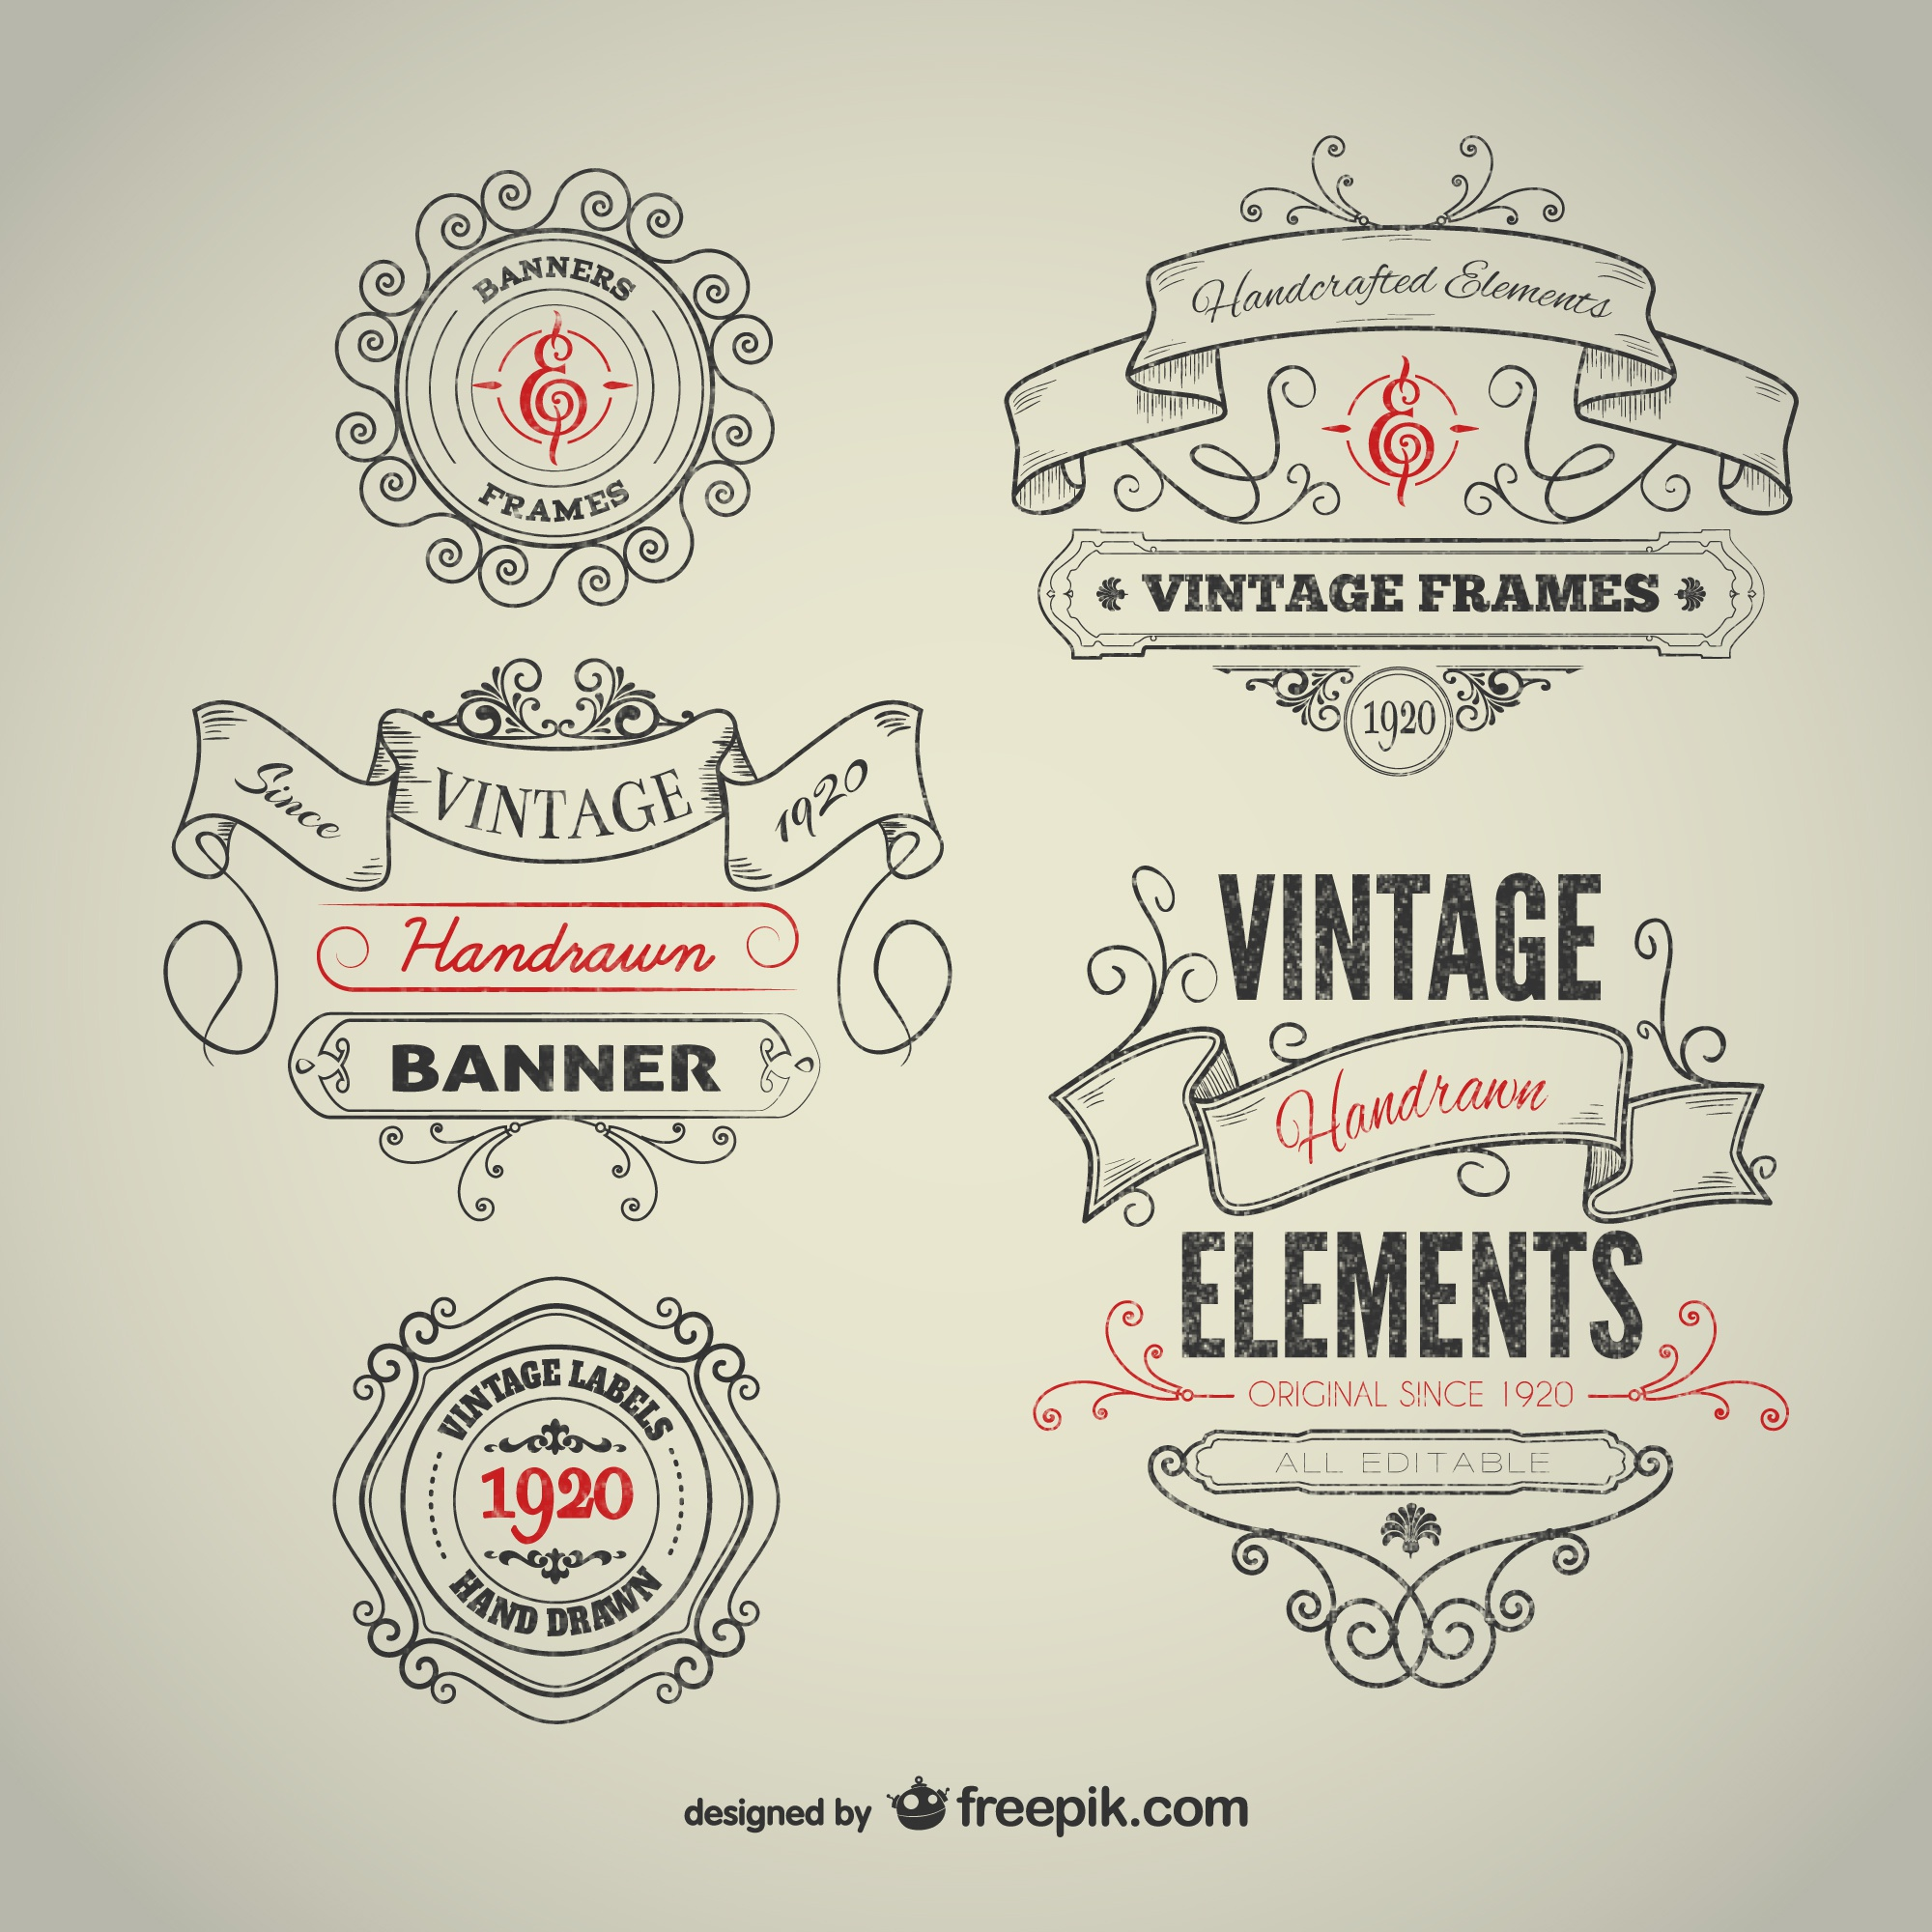 Vintage hand-drawn elements